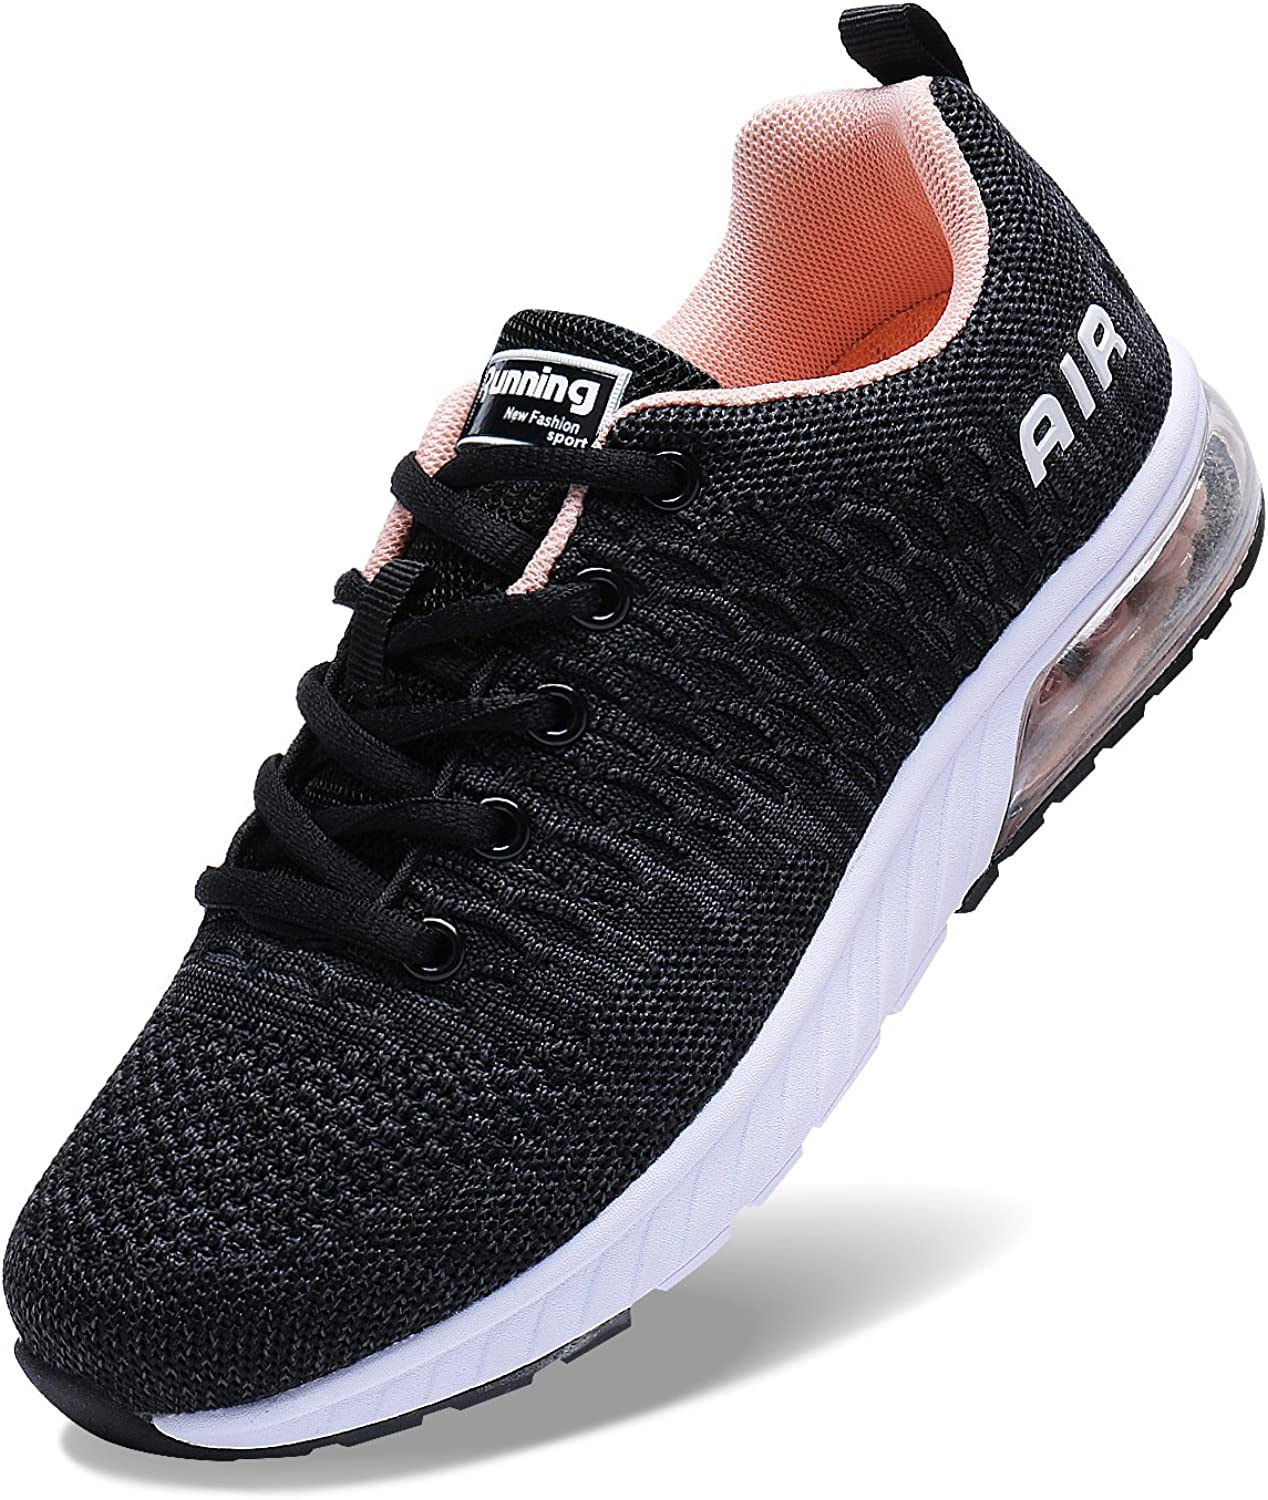 lightweight cushioned running shoes